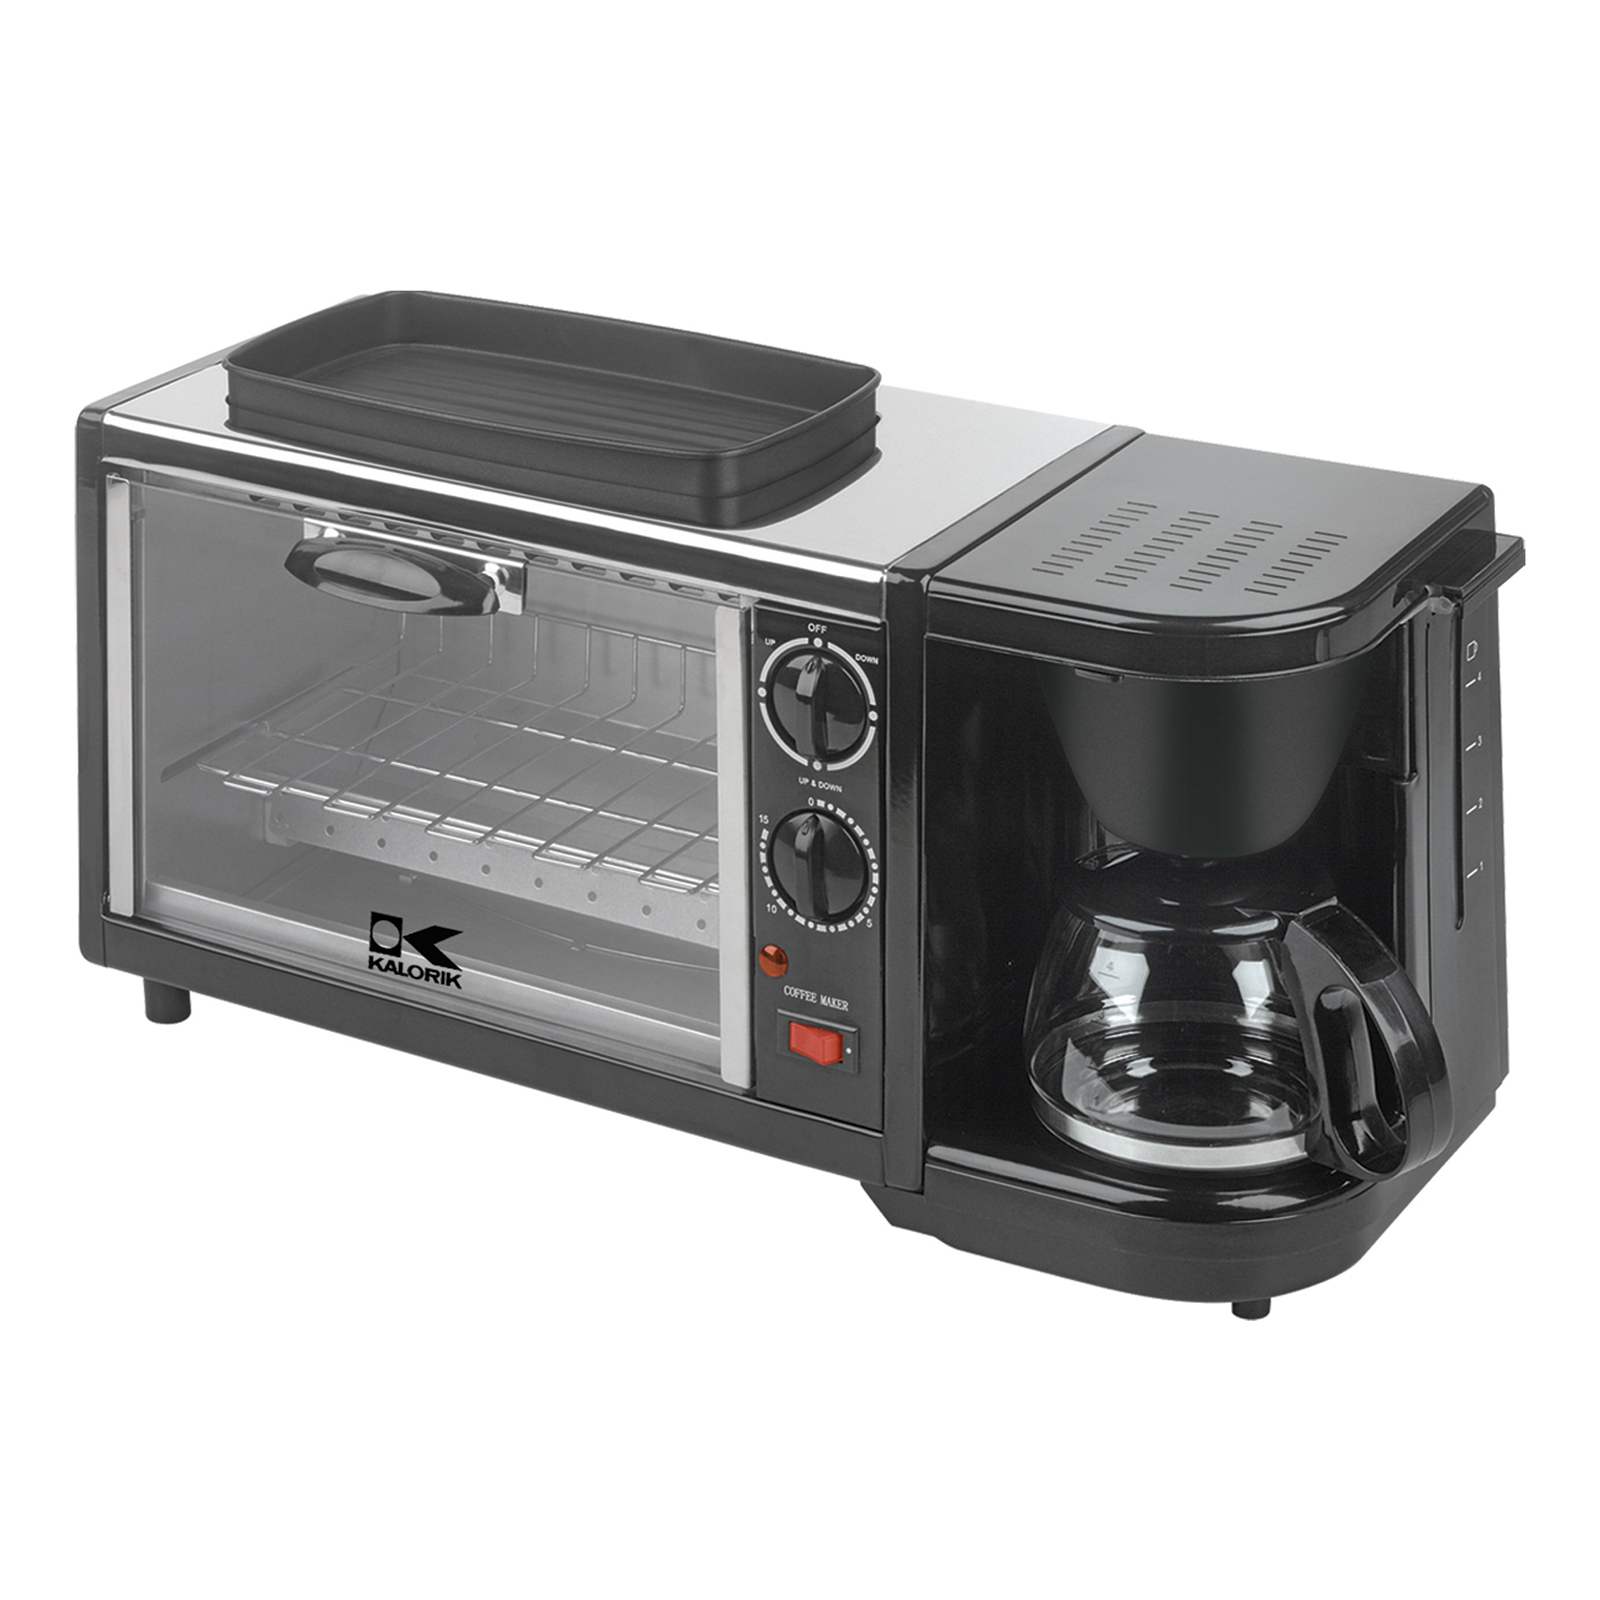 Countertop Oven Grill : Kalorik BSET1 Toaster Oven Grill with Coffee Maker at Hayneedle